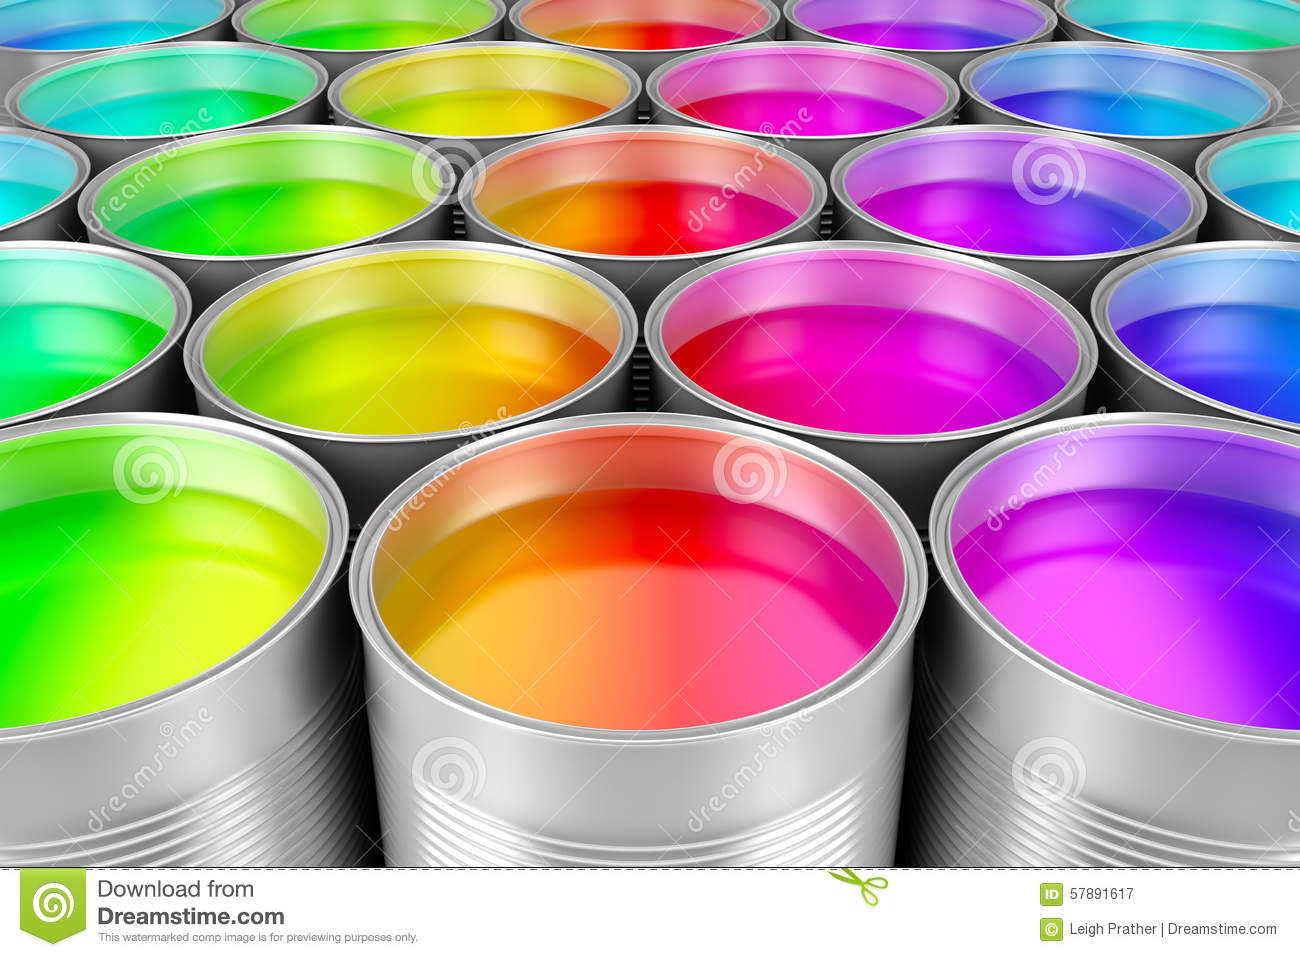 paint cans of colorful paint stock illustration image. Black Bedroom Furniture Sets. Home Design Ideas